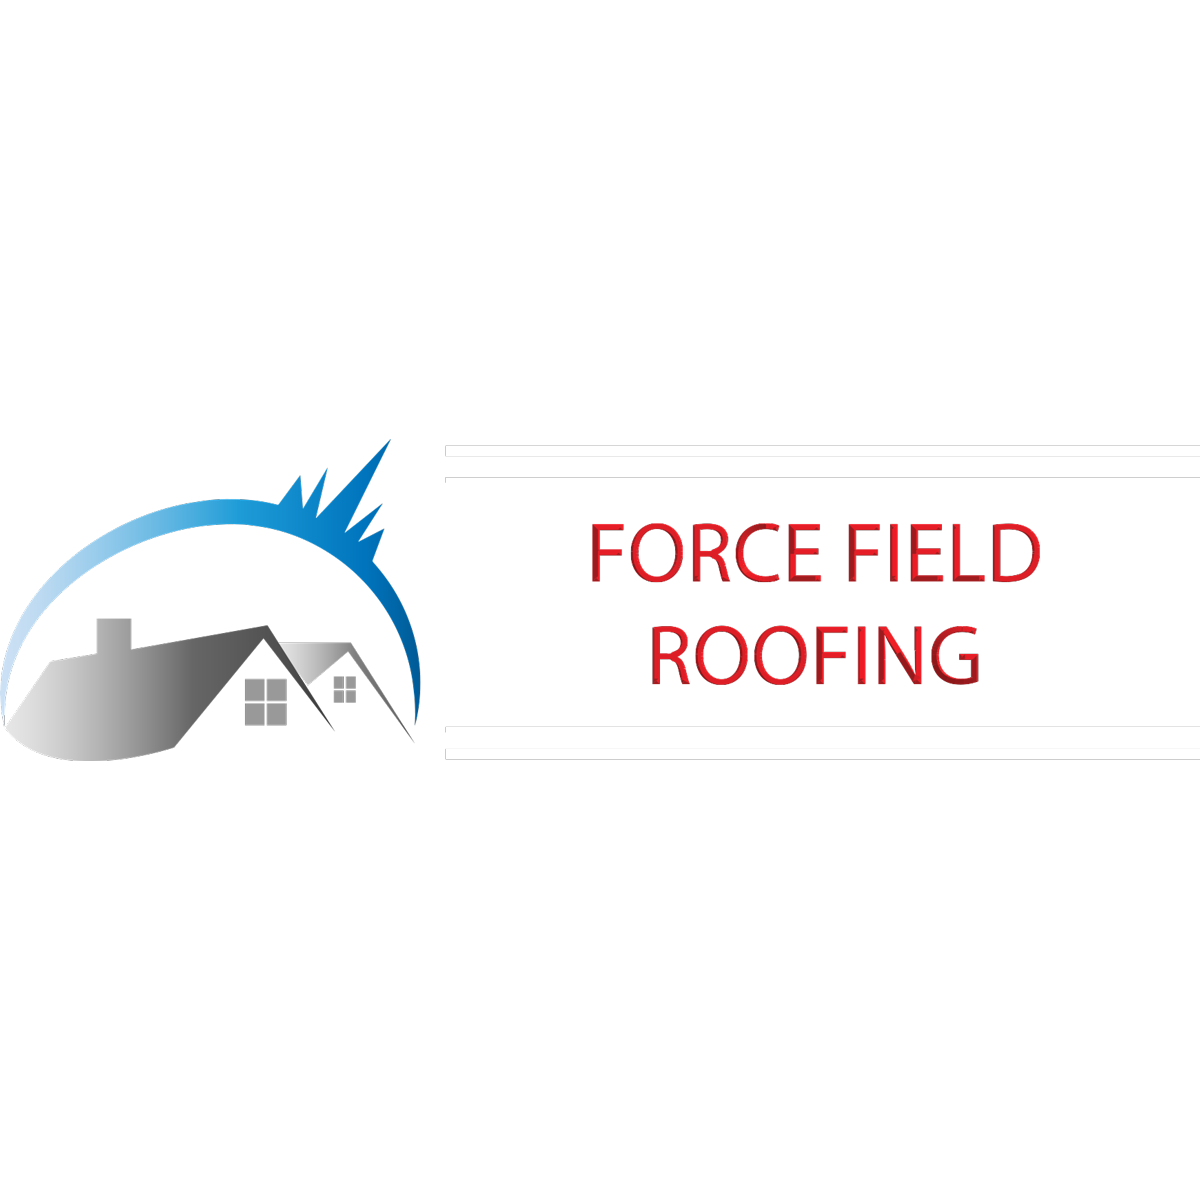 Force Field Roofing